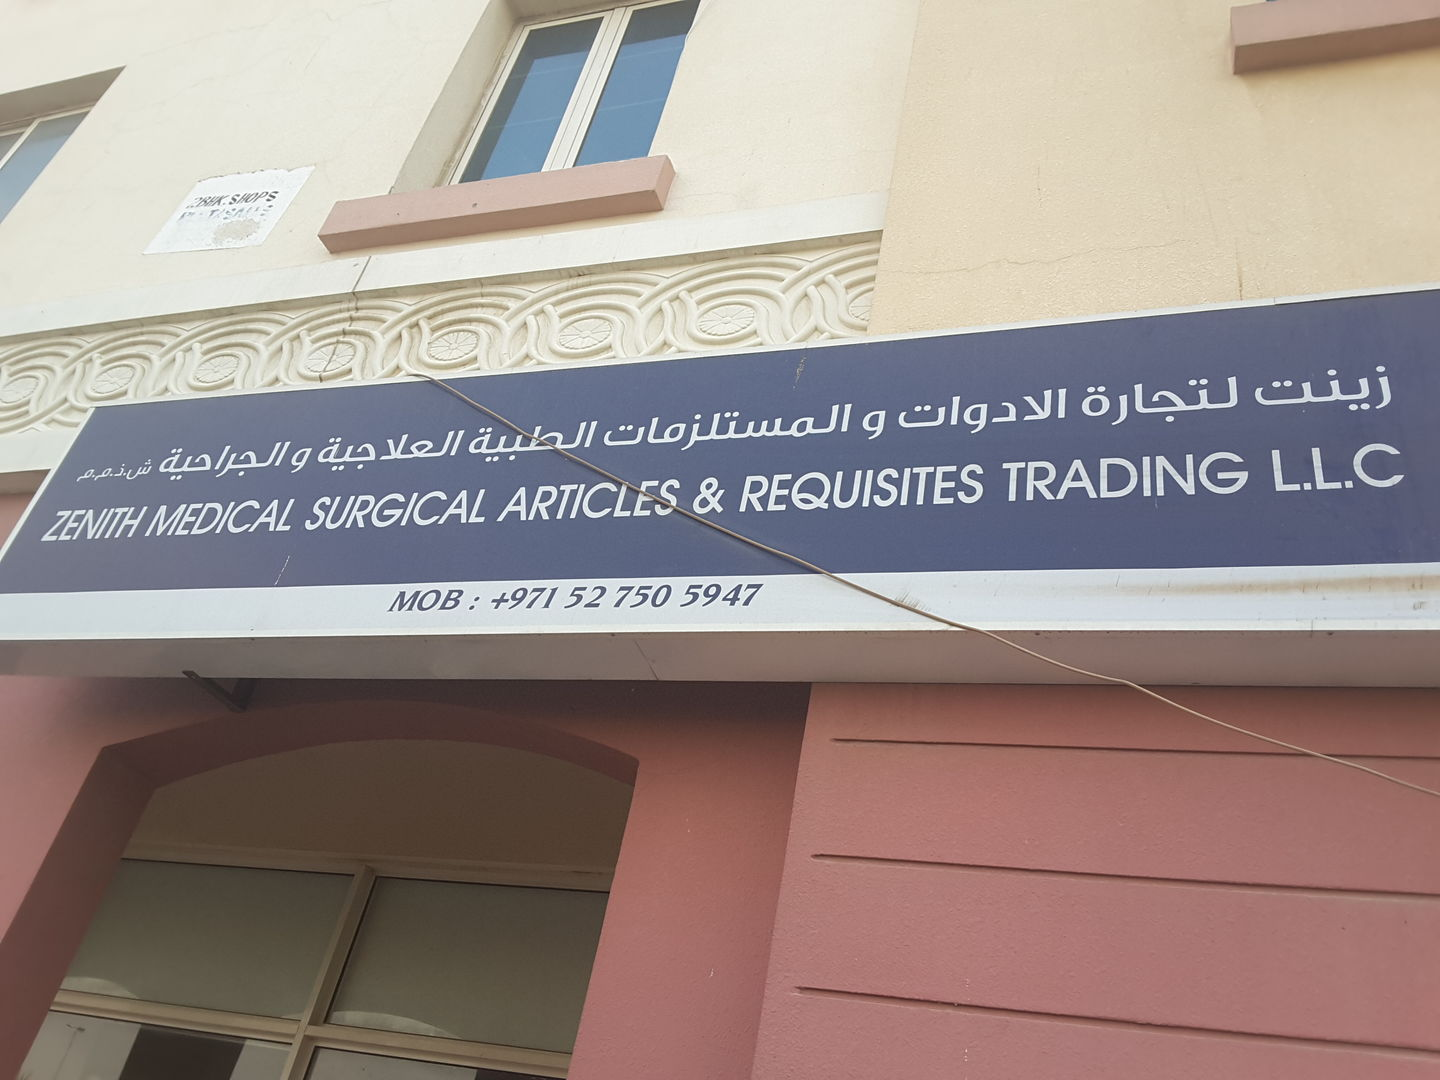 HiDubai-business-zenith-medical-surgical-articles-requisites-trading-b2b-services-distributors-wholesalers-international-city-warsan-1-dubai-2